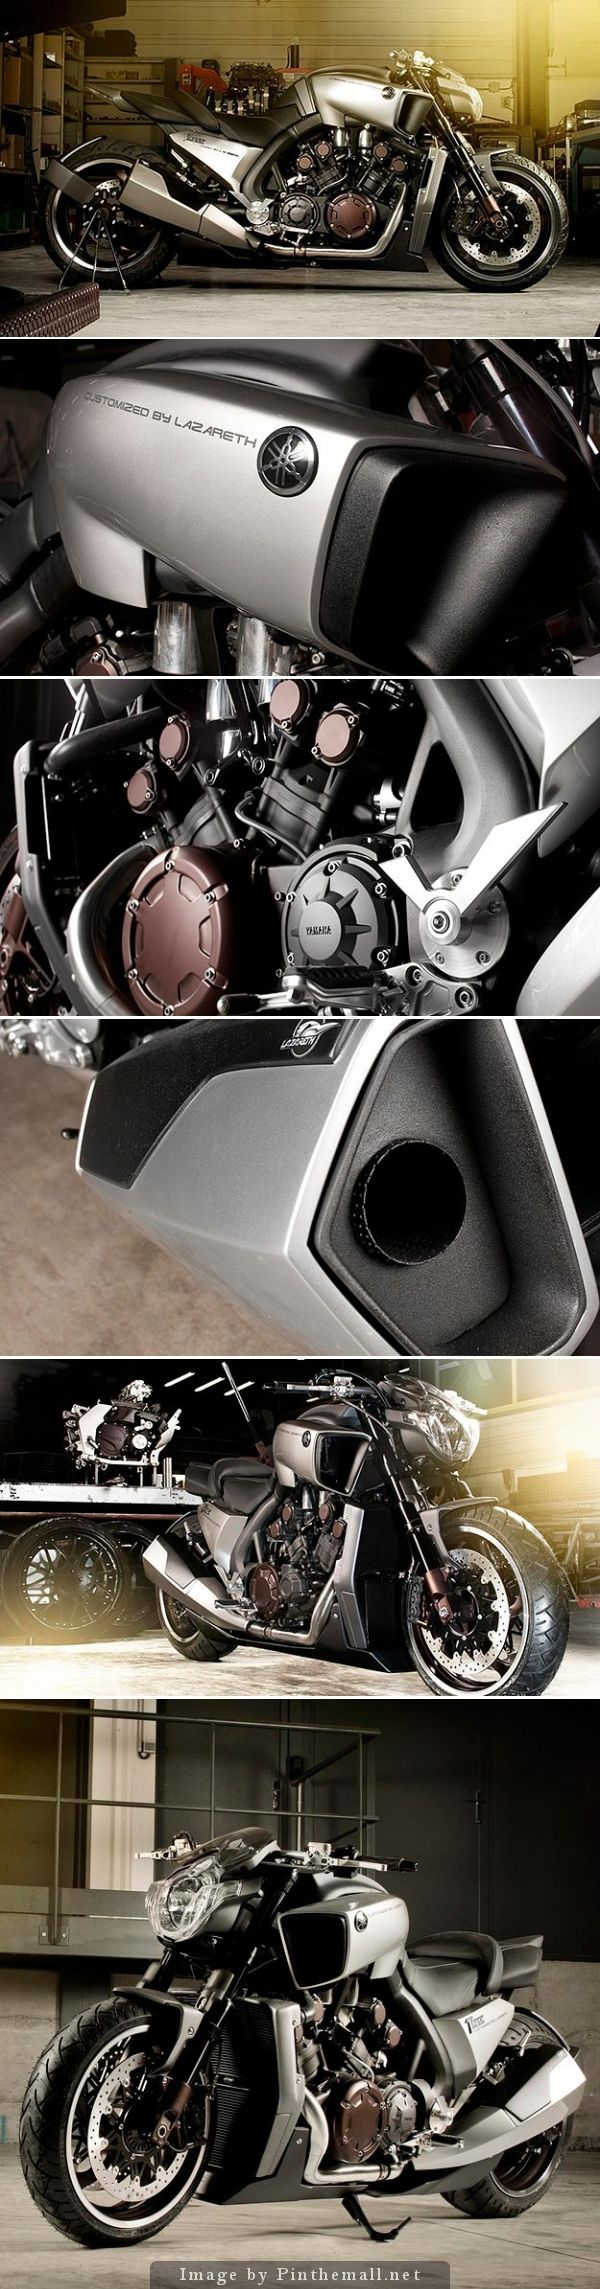 Yamaha V-Max Hyper Modified | Bike EXIF